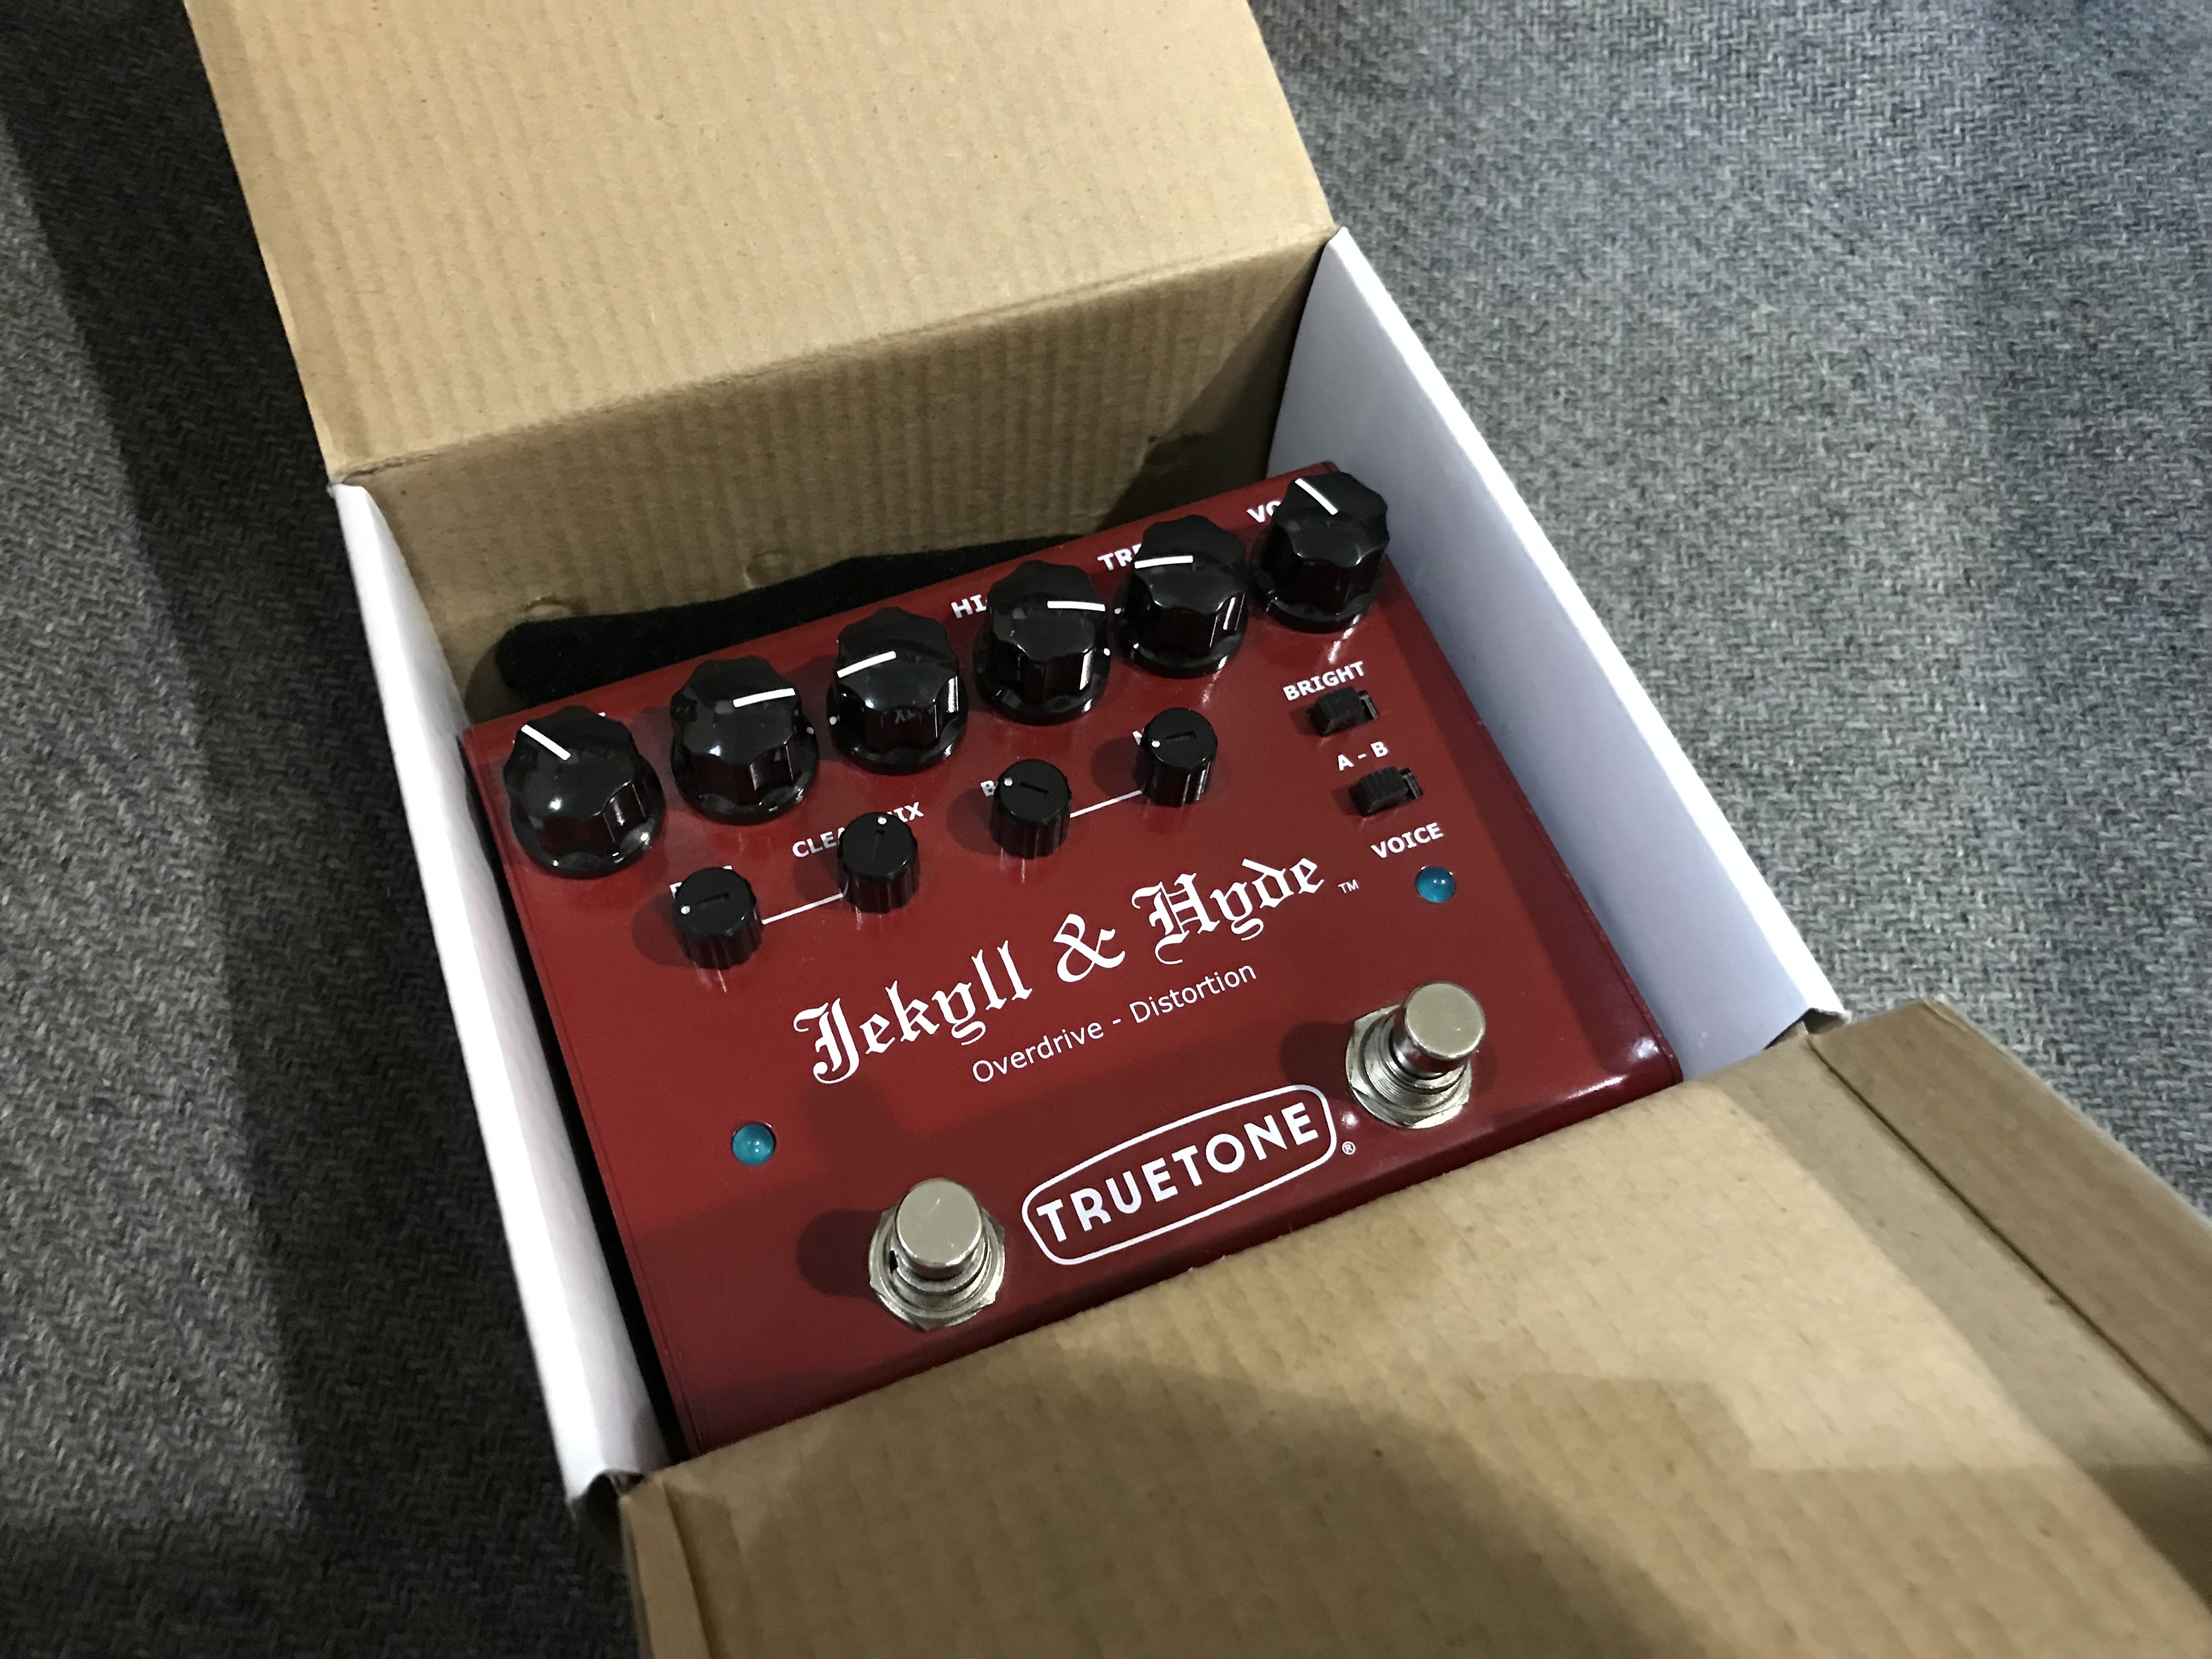 TRUETONE JEKYLL AND HYDE V3 Overdrive Distortion Effect Pedal